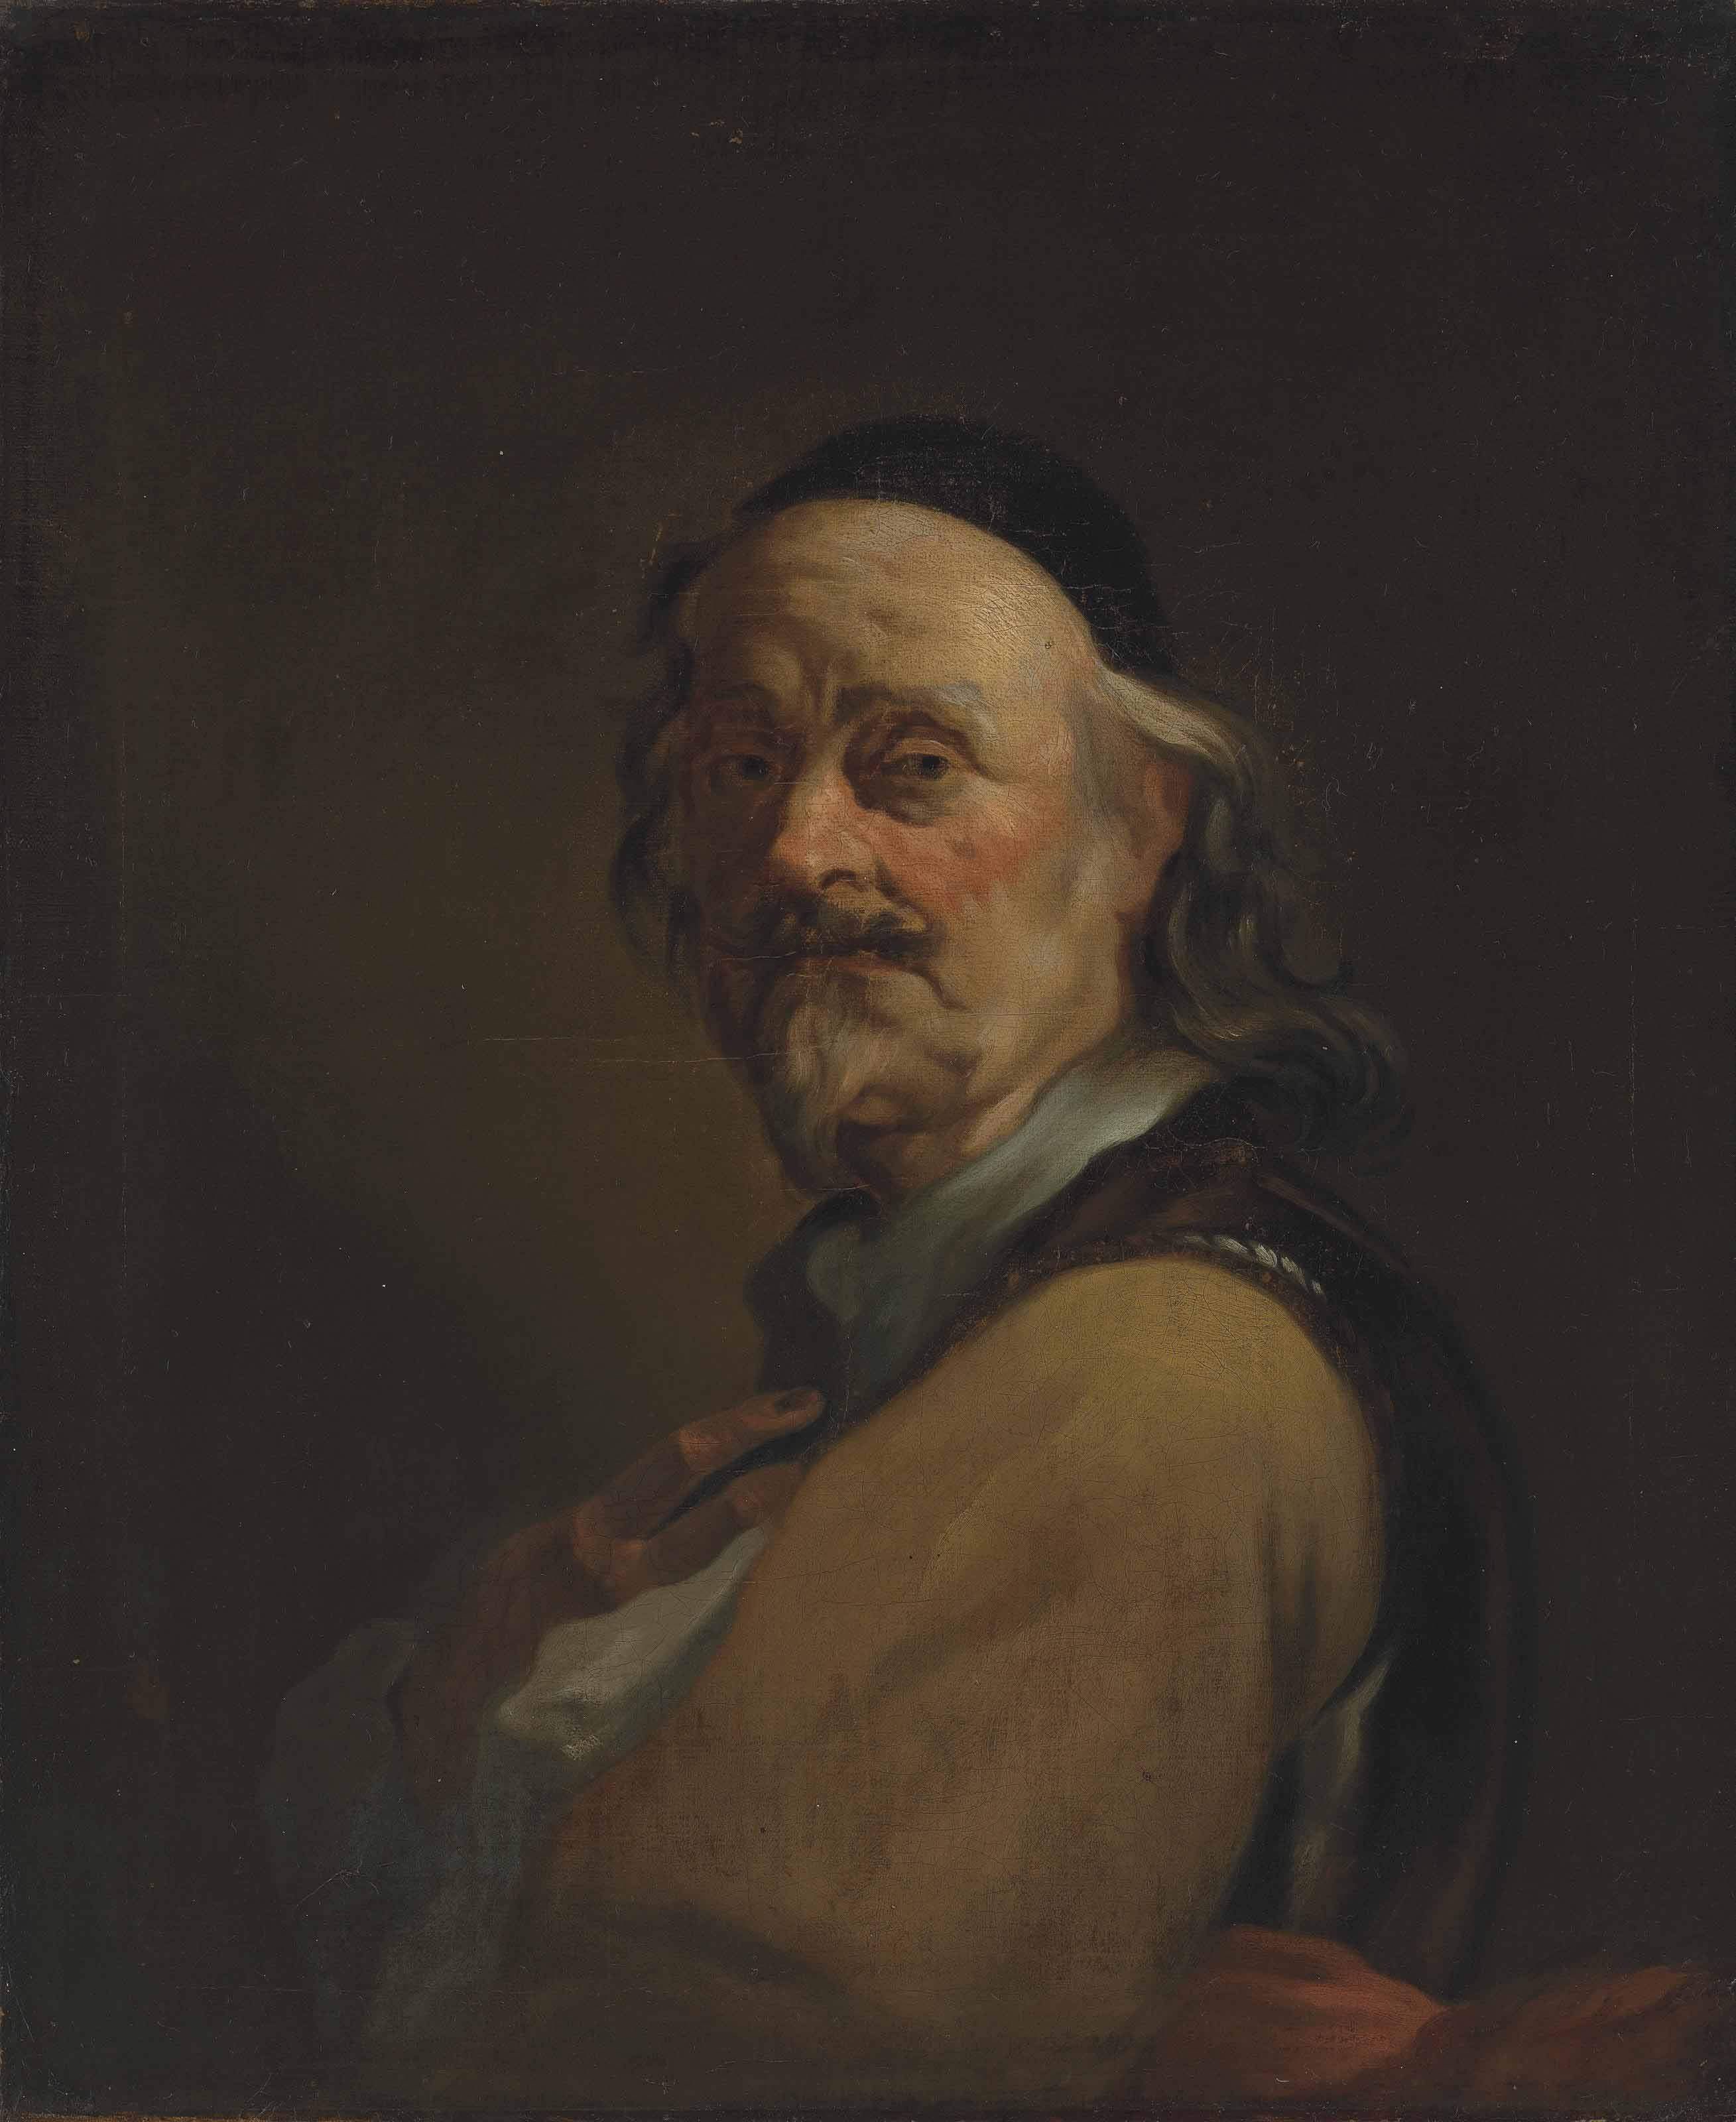 Portrait of the artist in a breastplate and a black cap